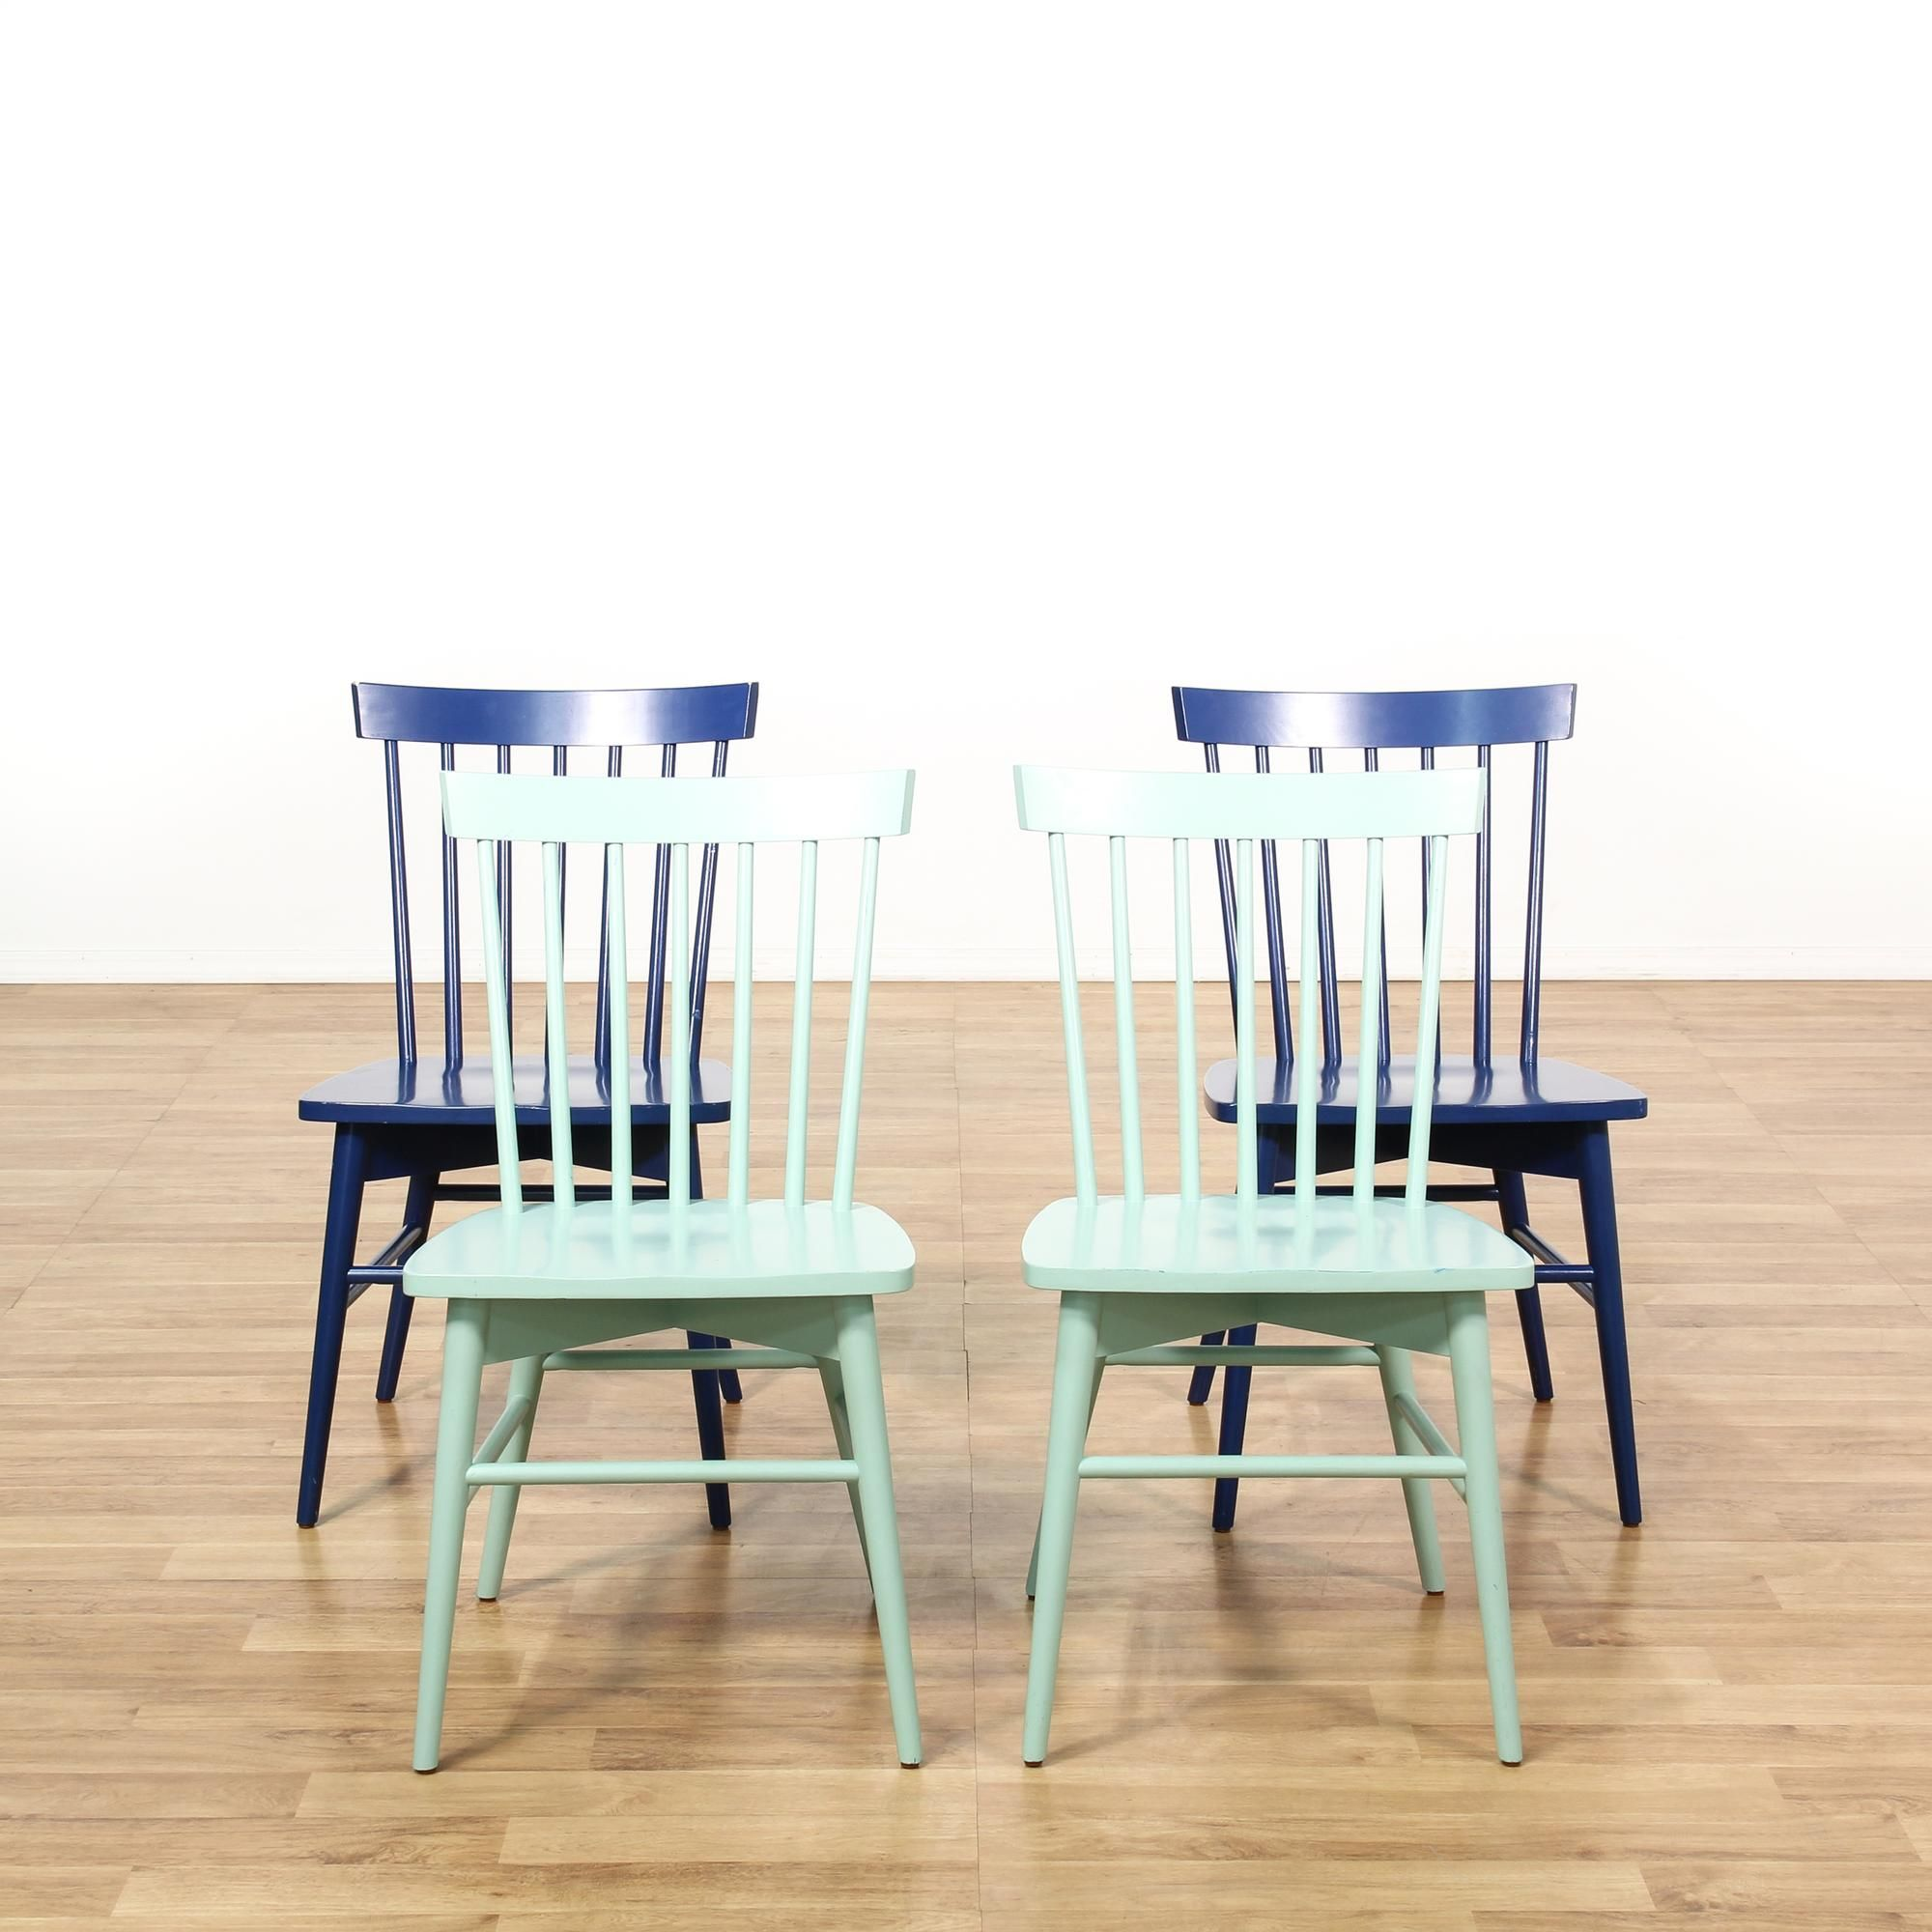 This set of spindle back dining chairs is featured in a solid wood